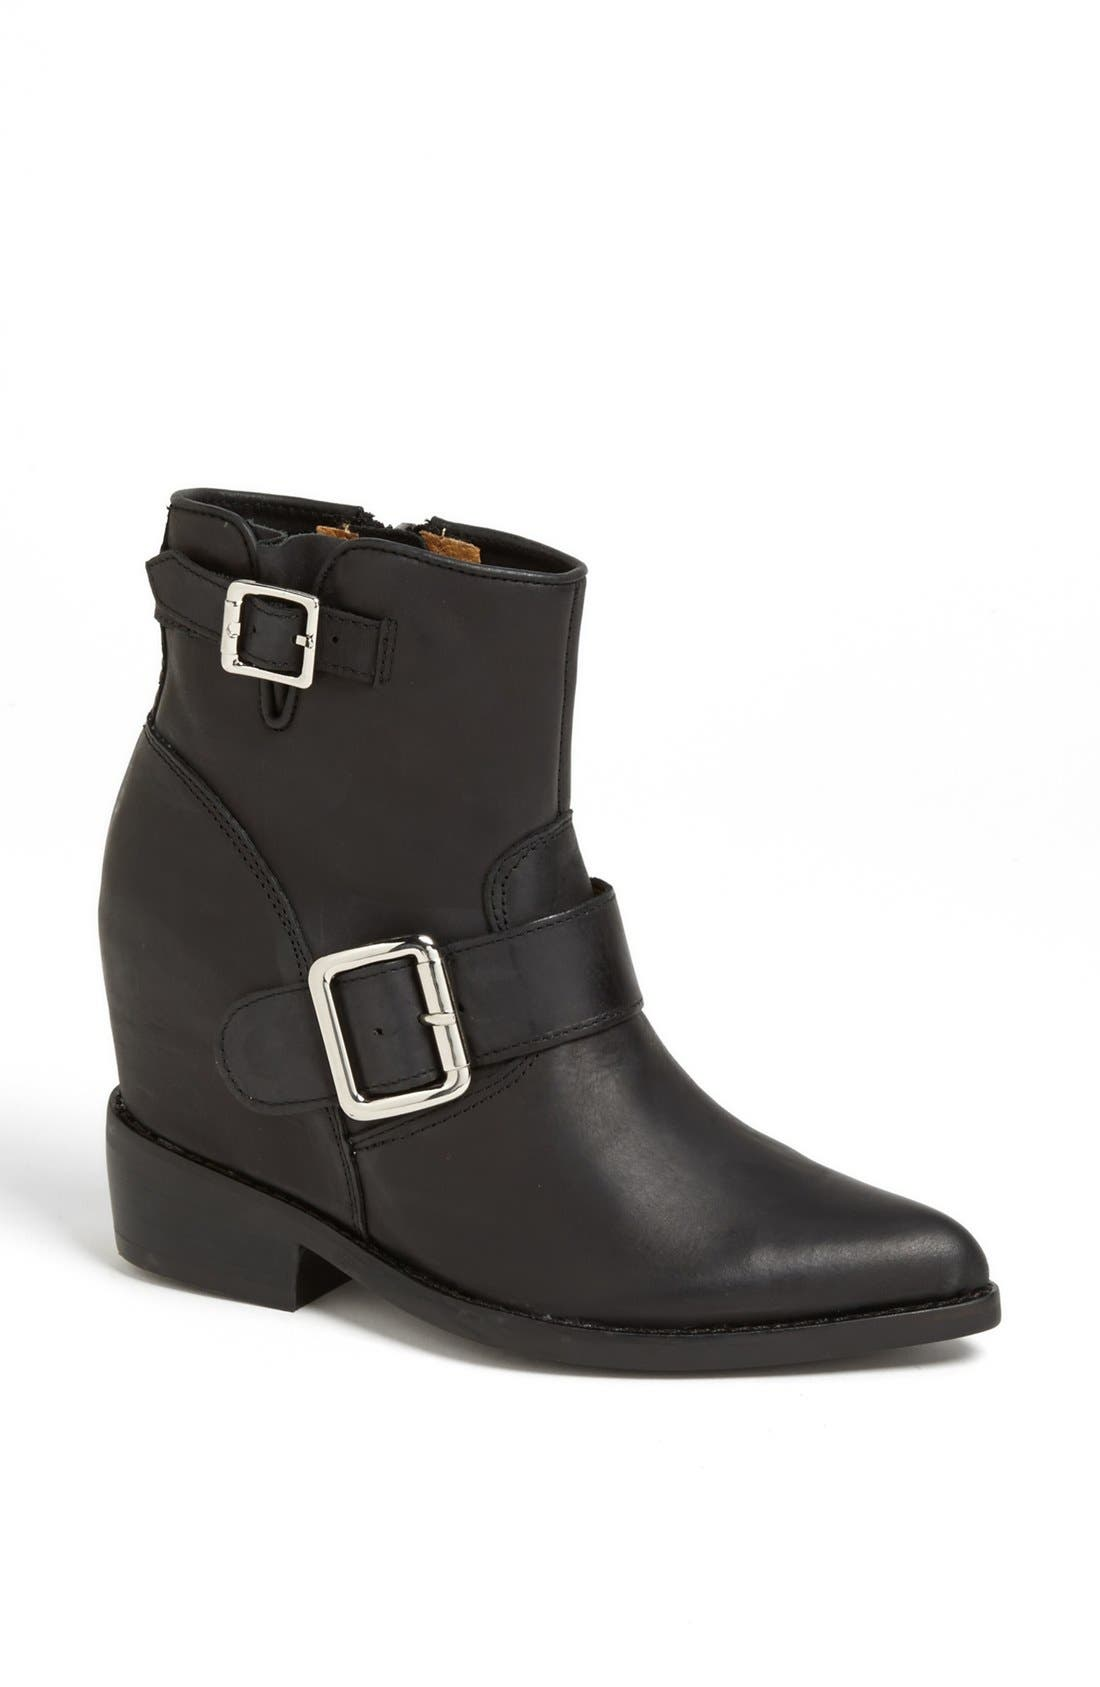 Main Image - Jeffrey Campbell 'Welda' Boot